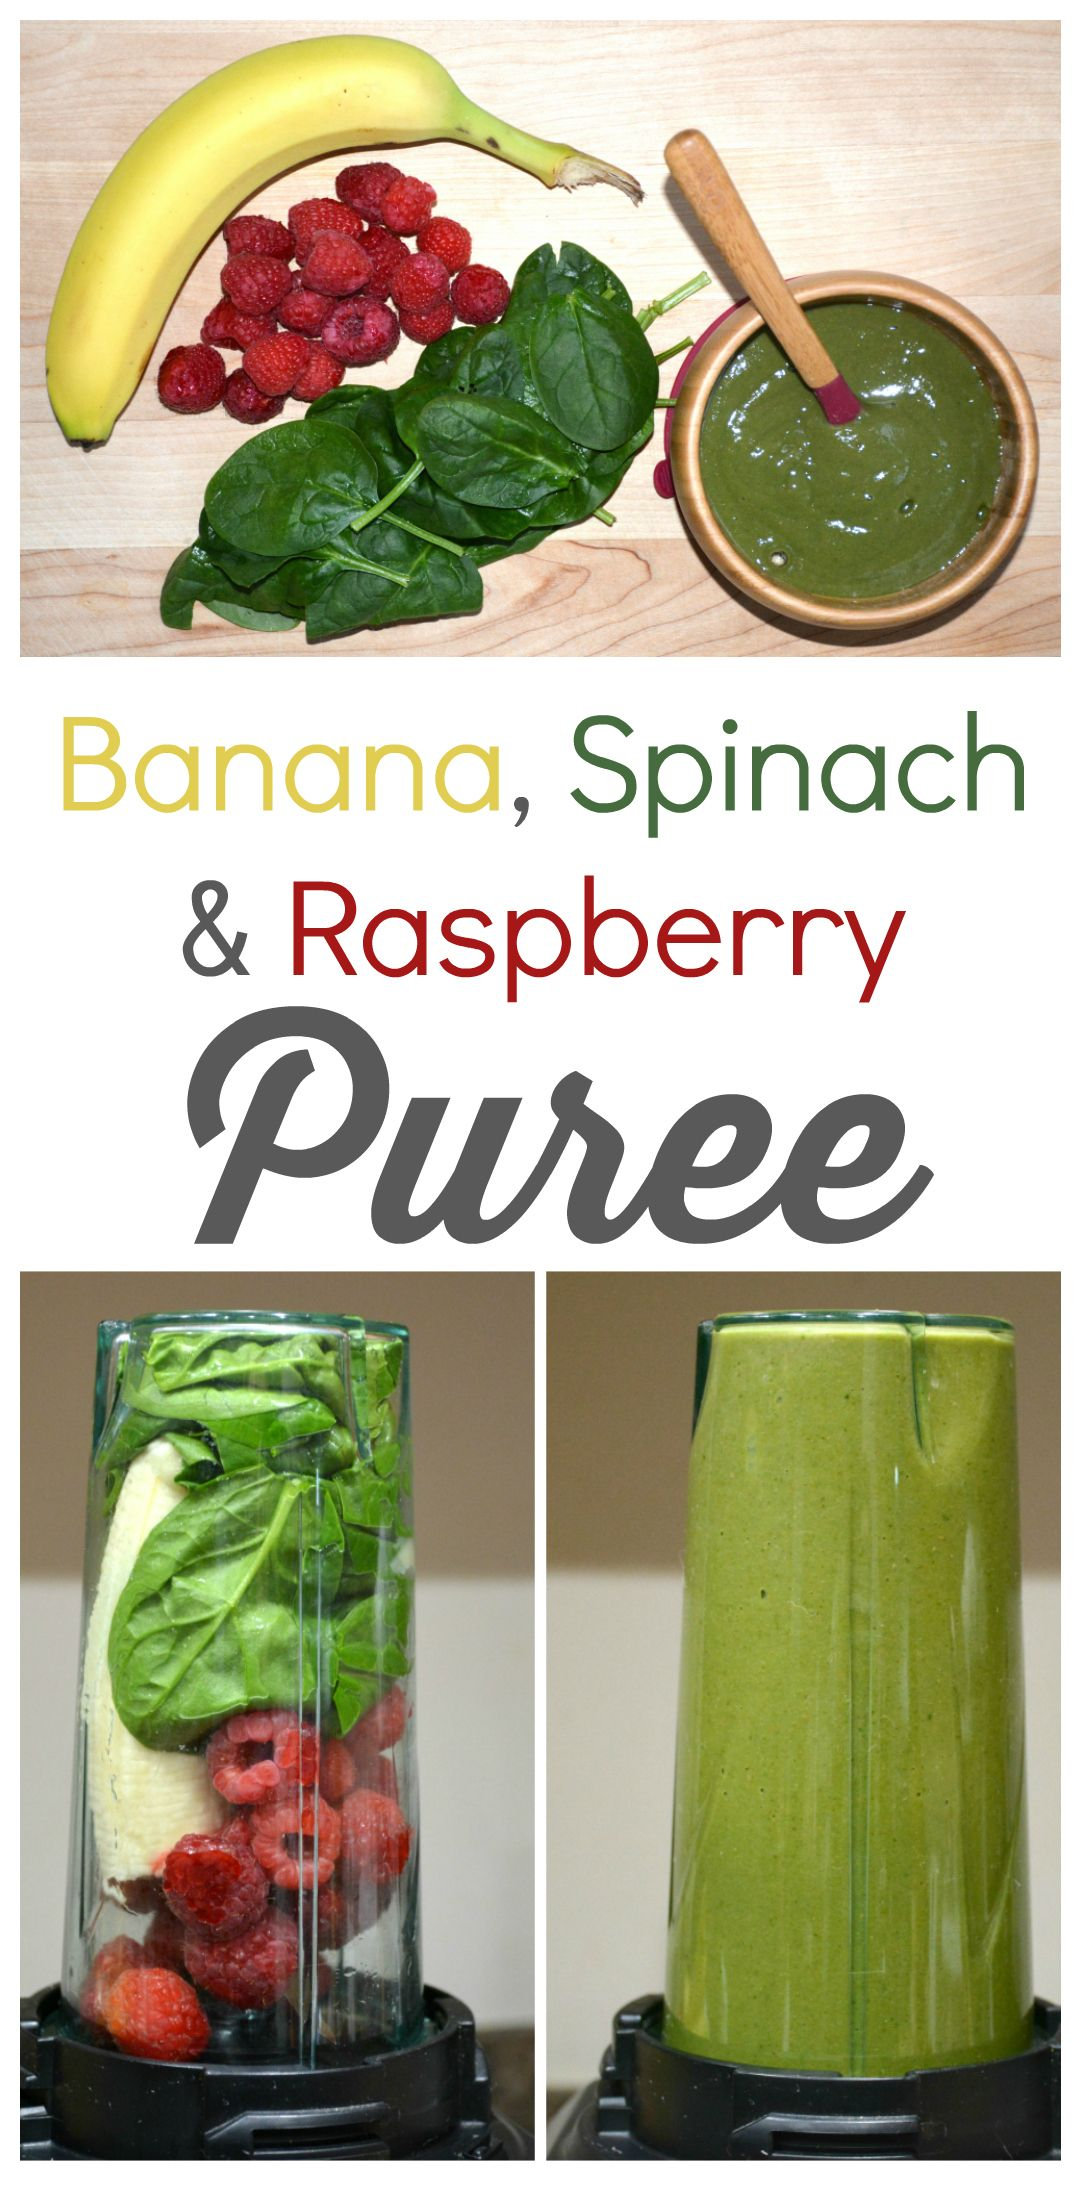 Banana, Spinach, and Raspberry puree recipe, plus details